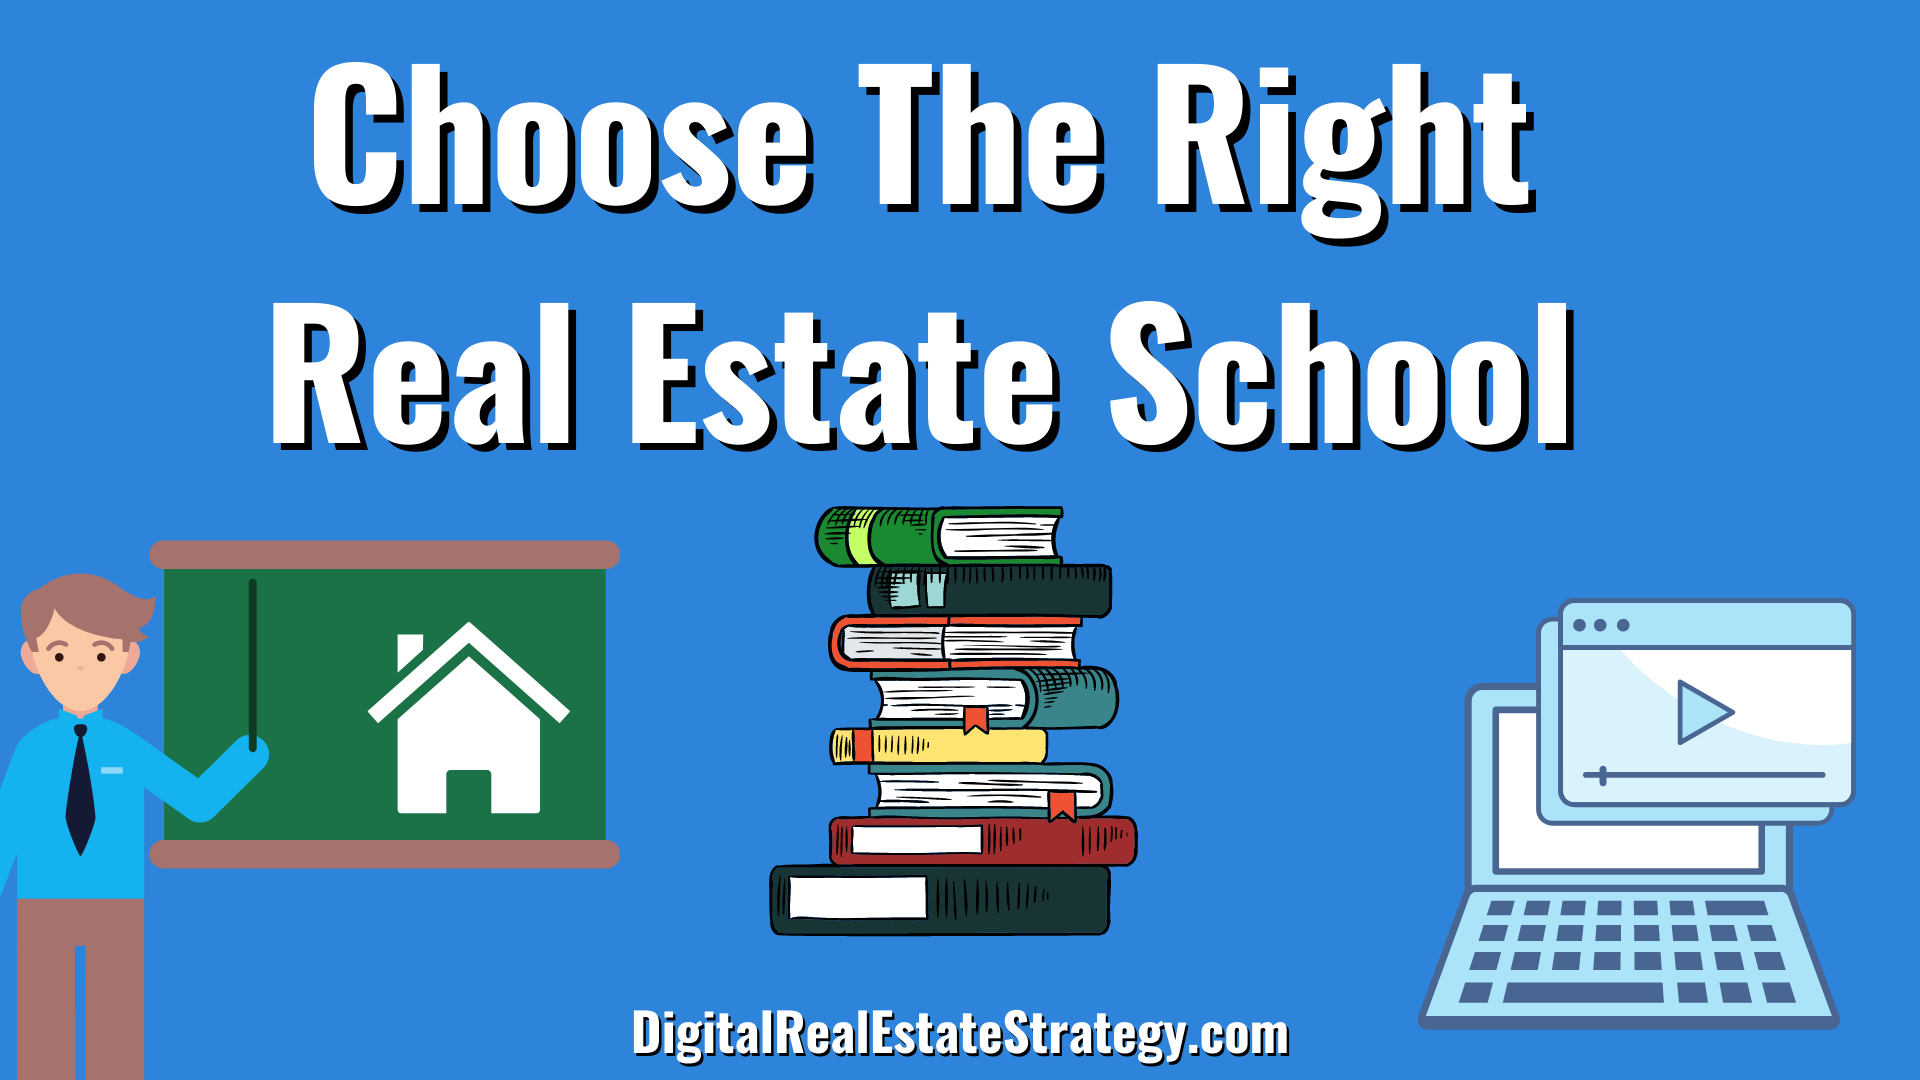 Choose The Right Real Estate School - Jerome Lewis - Digital Real Estate Strategy - eXp Realty Philadelphia